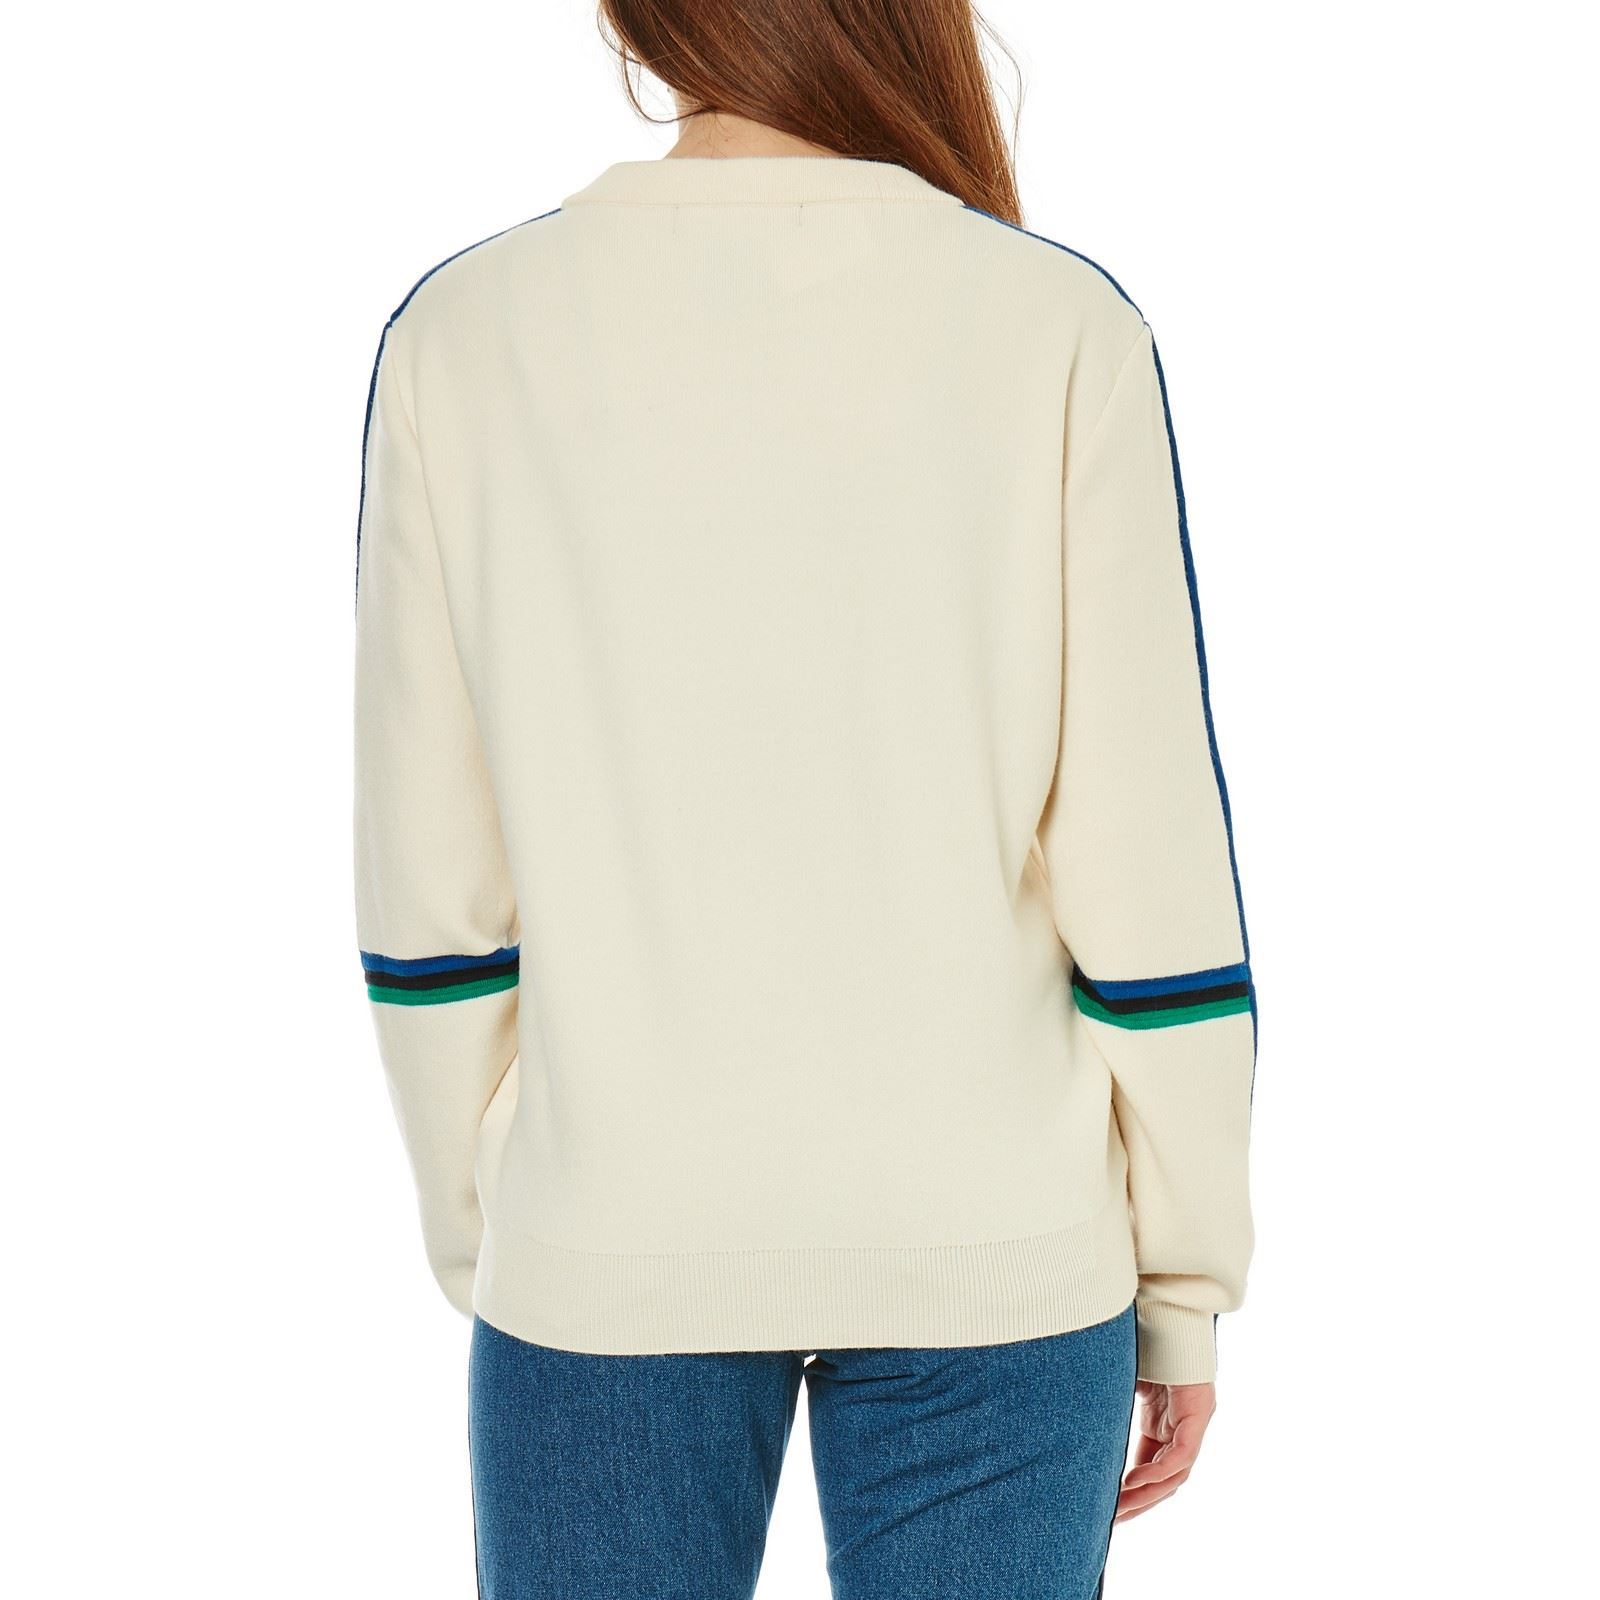 Damara Shirt Sweat Brandalley Vero Moda Ecru U8vanxw5